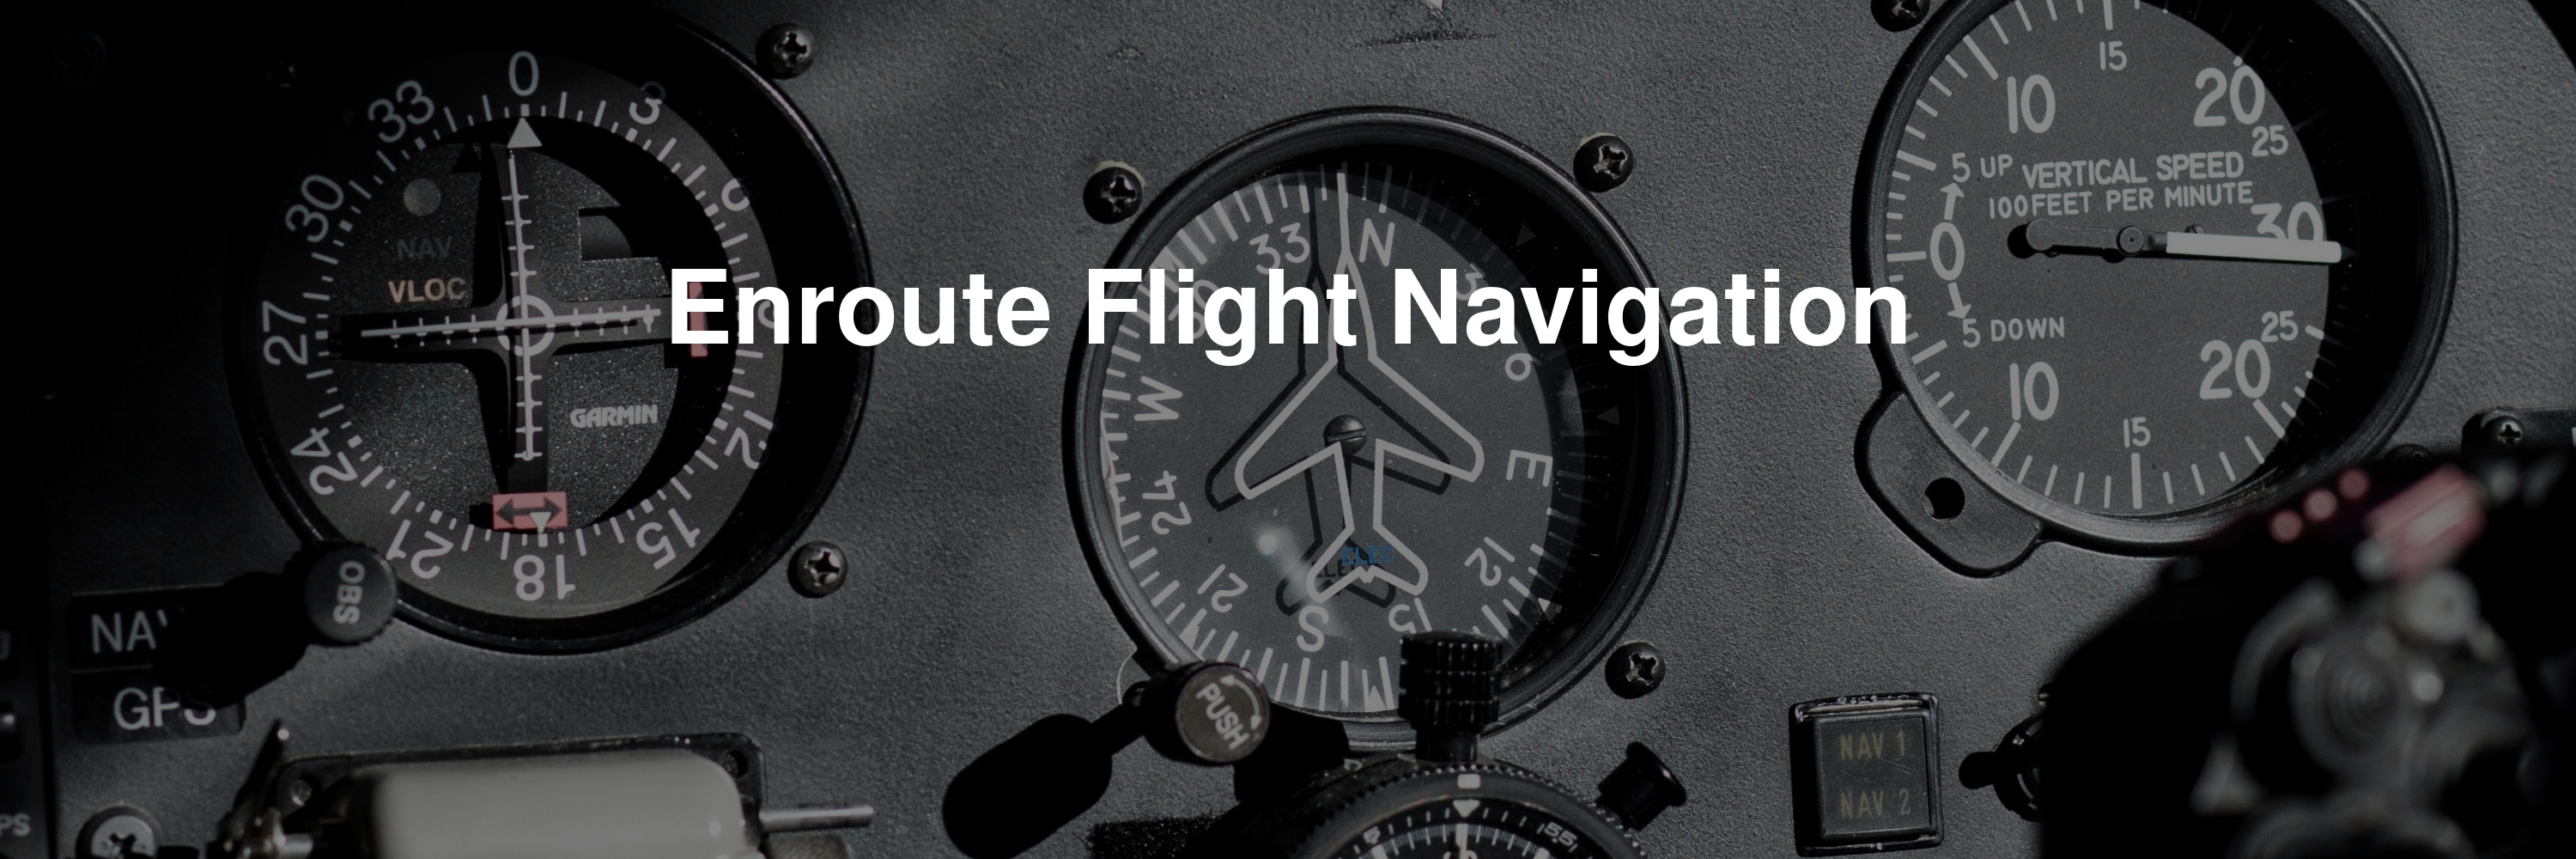 Enroute Flight Navigation banner